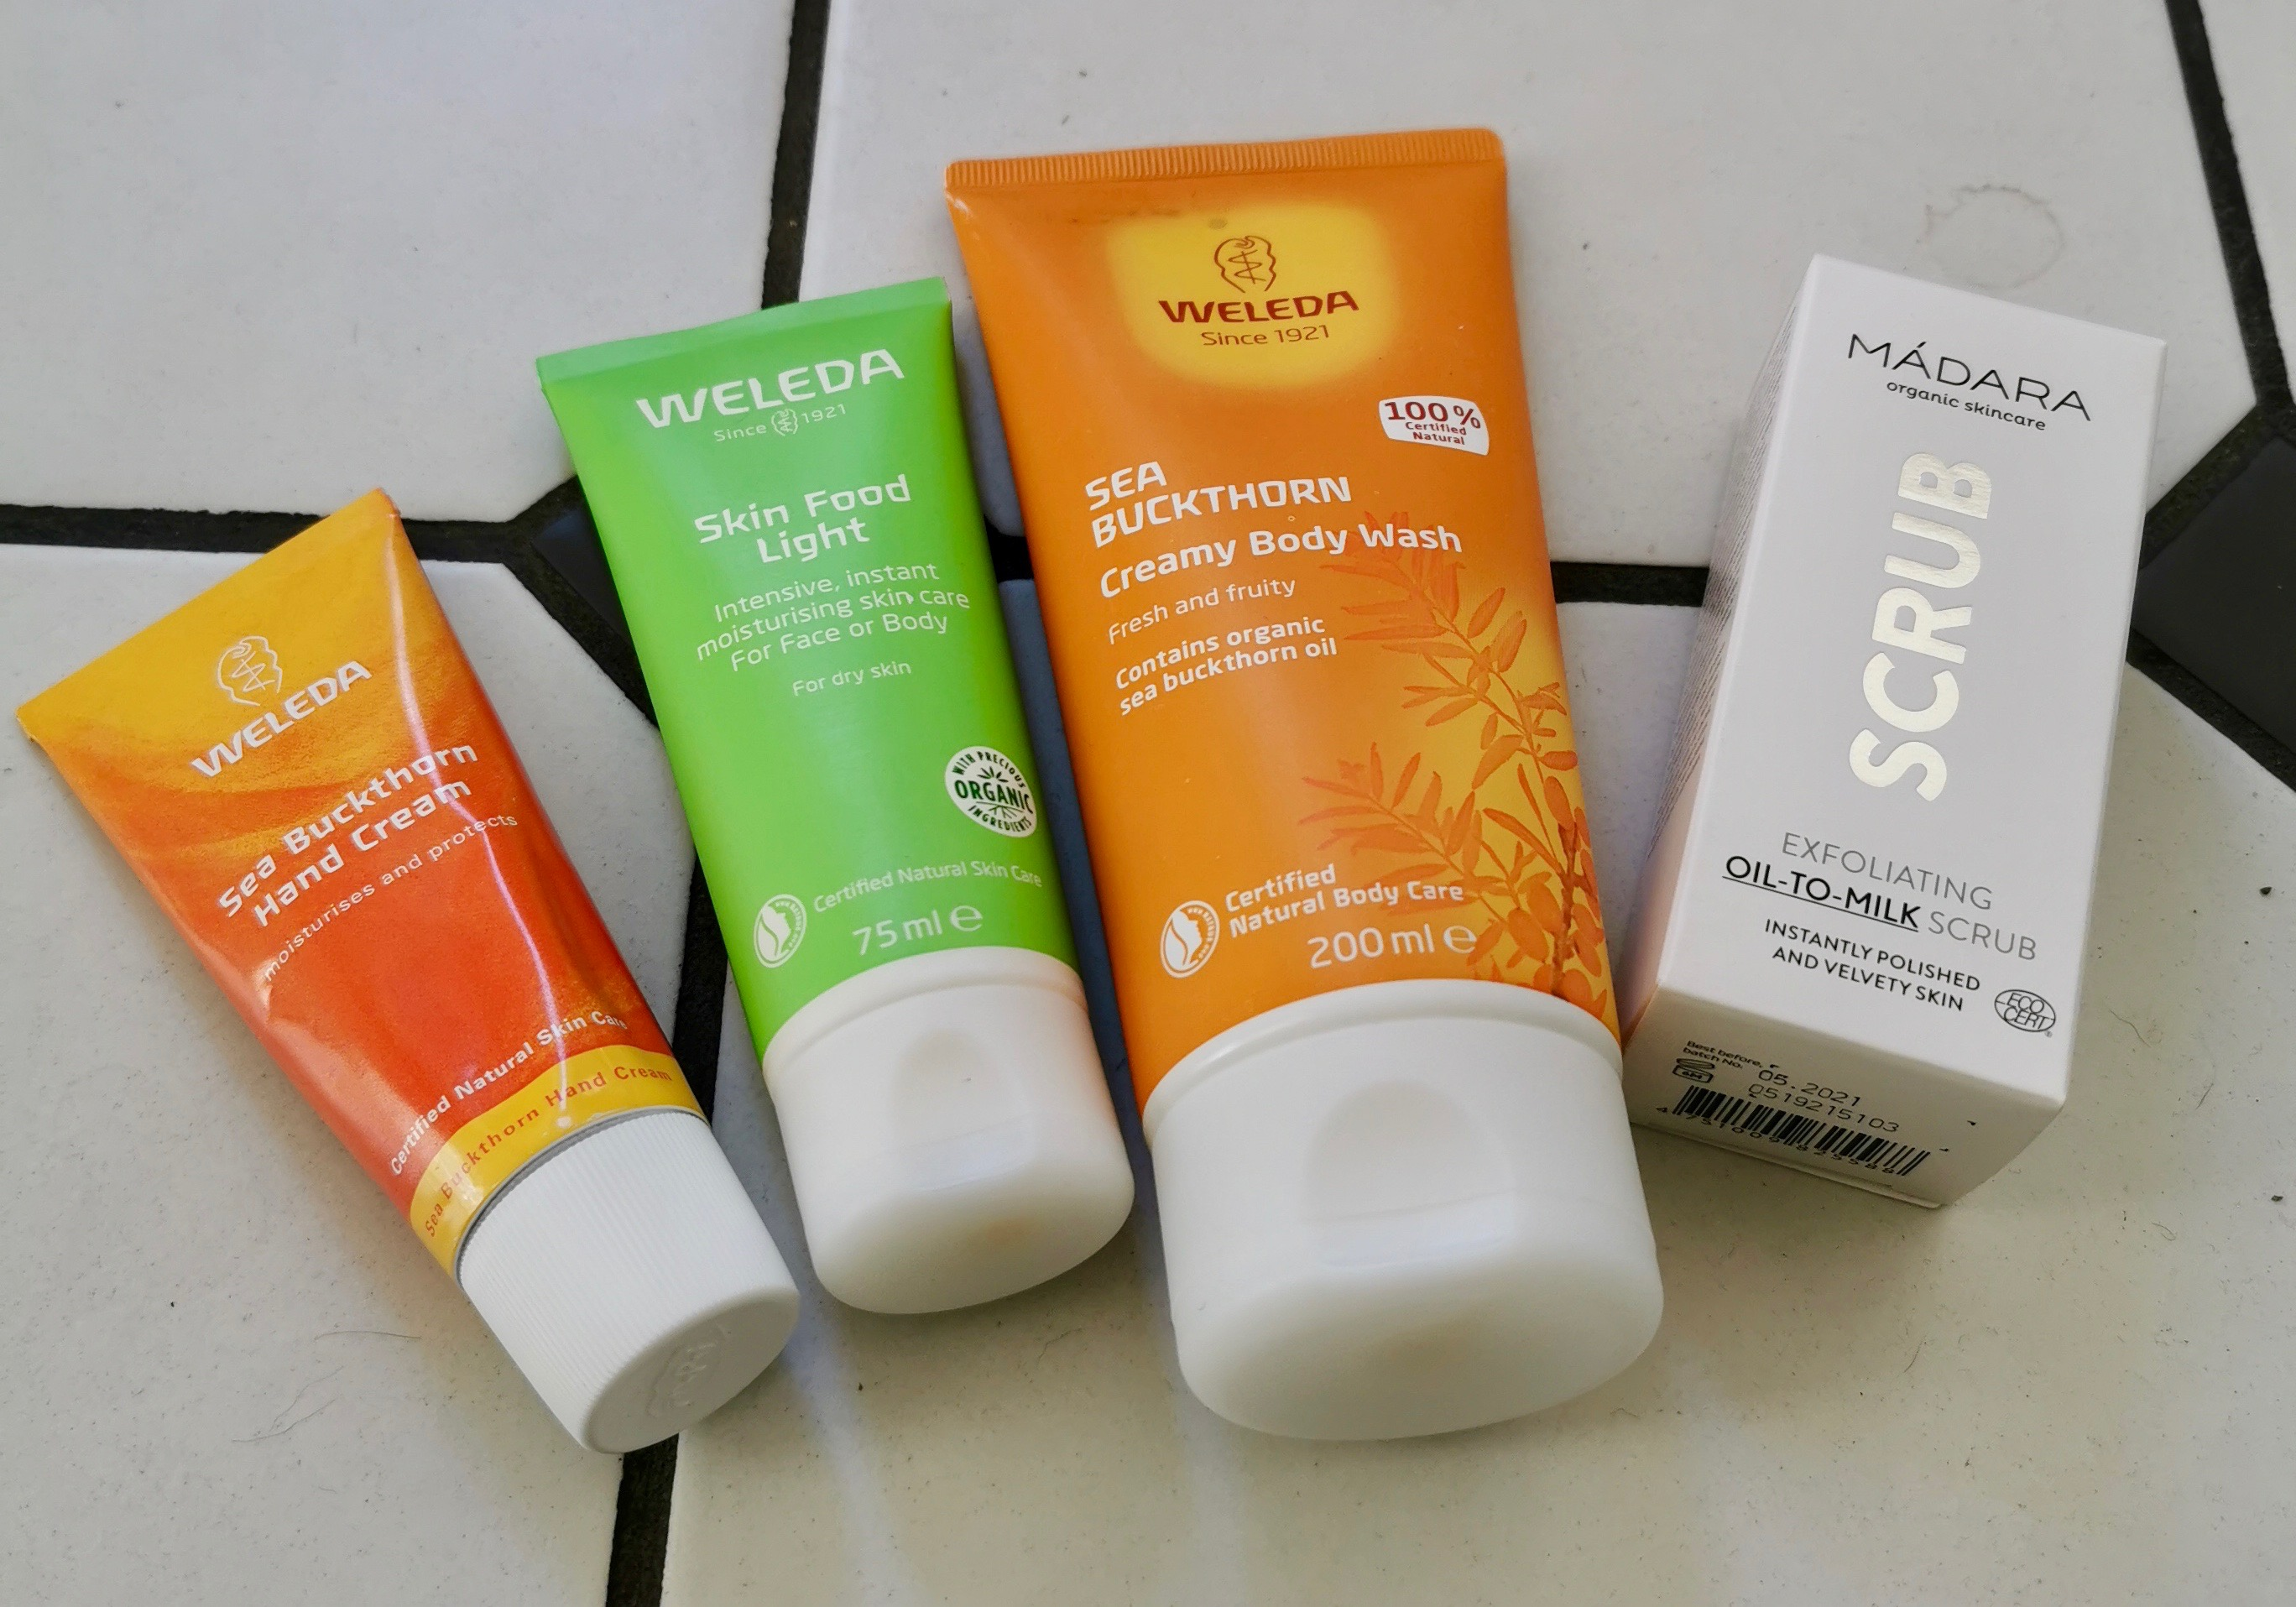 Weleda produkter. Håndcreme, skin food light